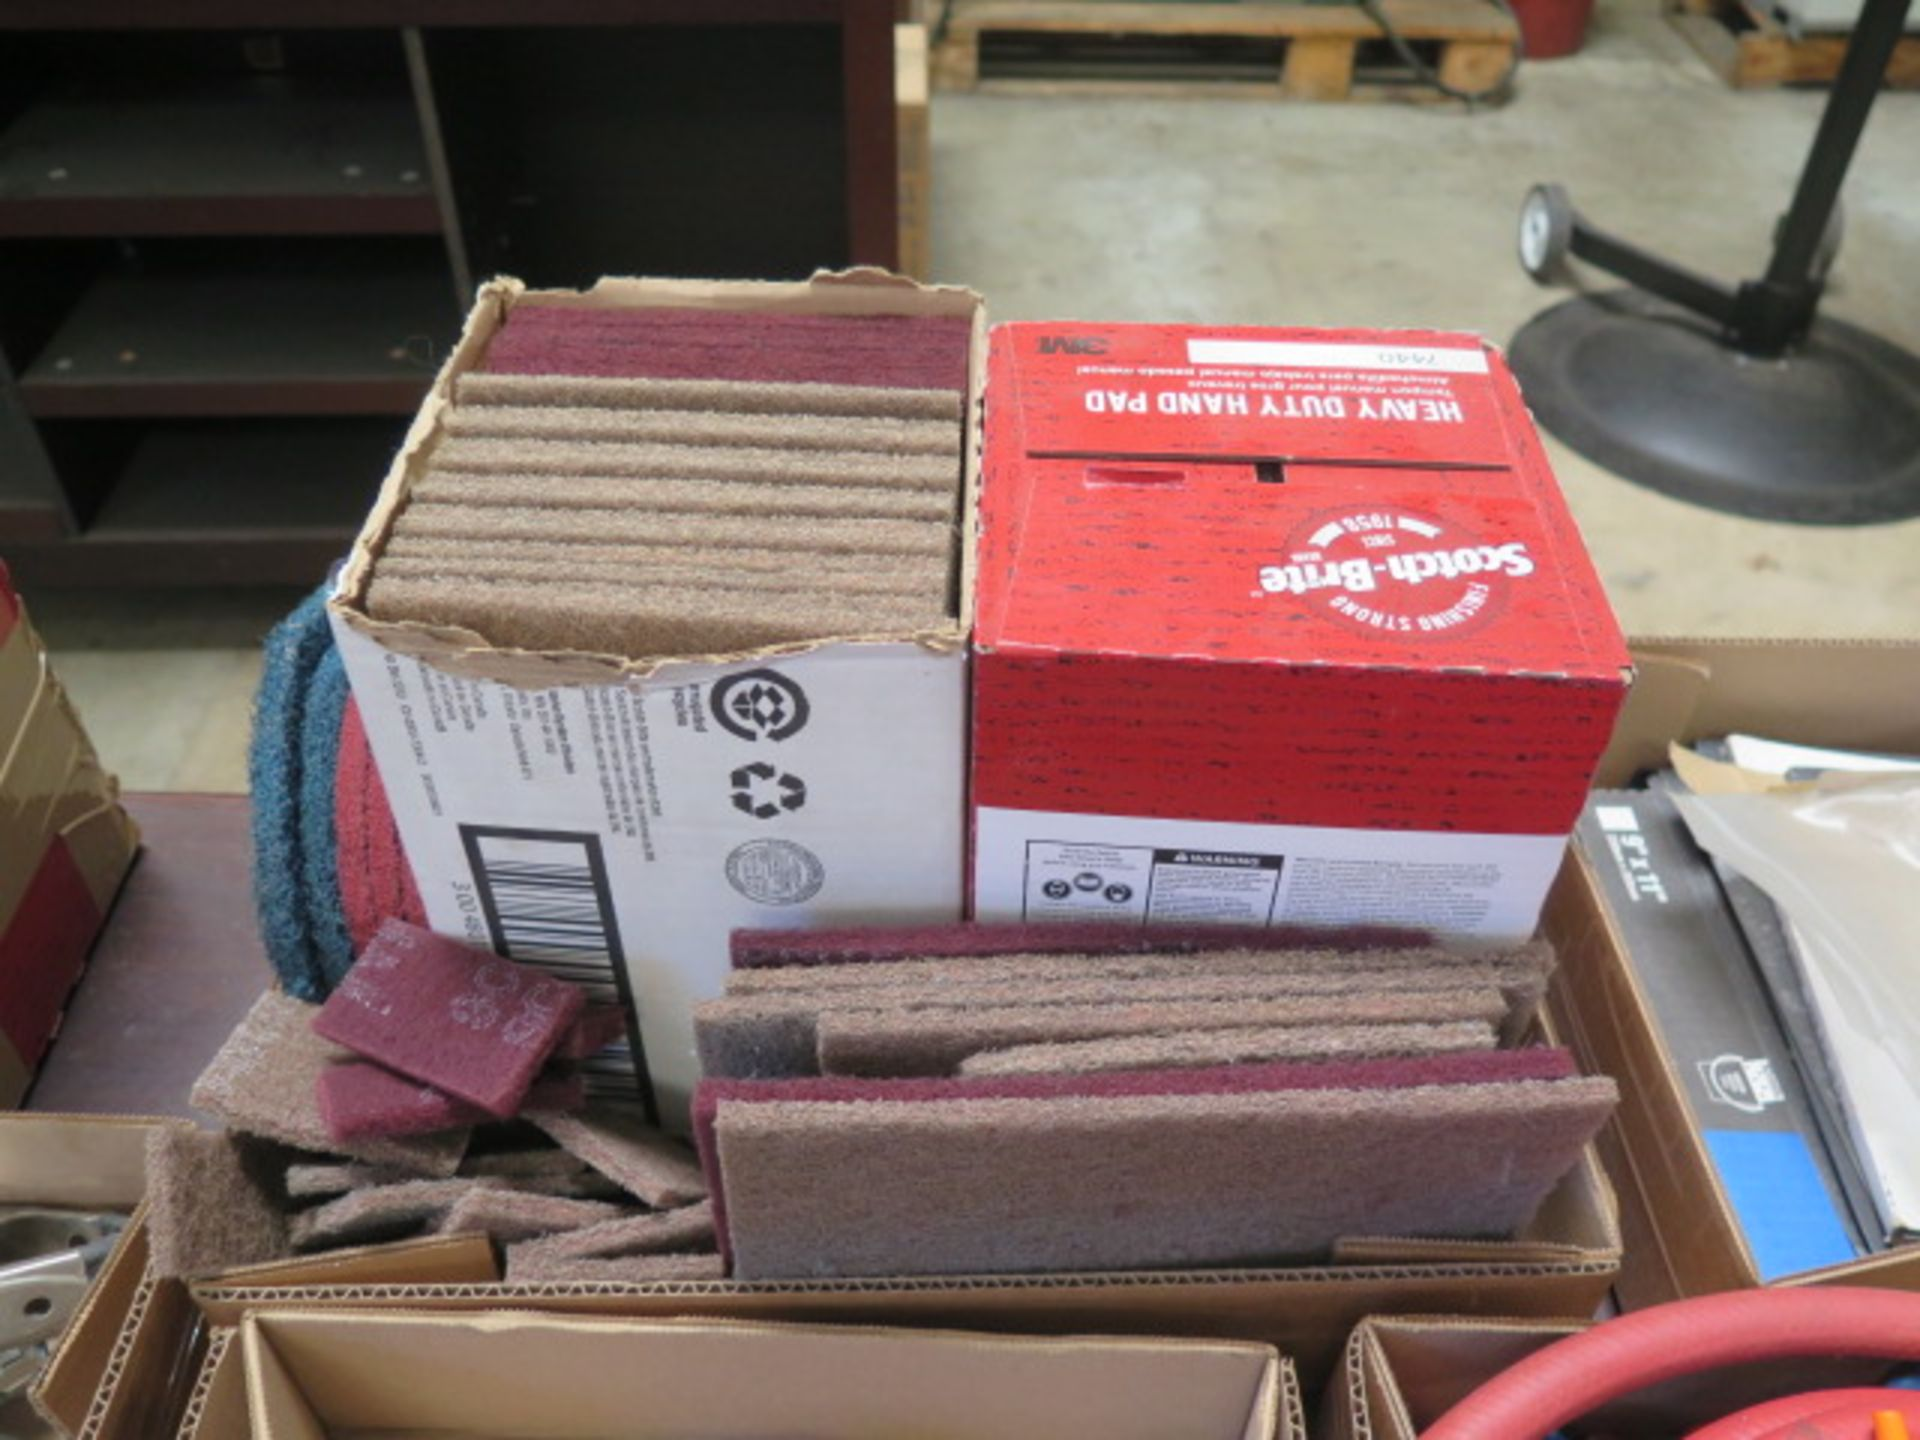 ScotchBrite Pads and Sand Paper (SOLD AS-IS - NO WARRANTY)